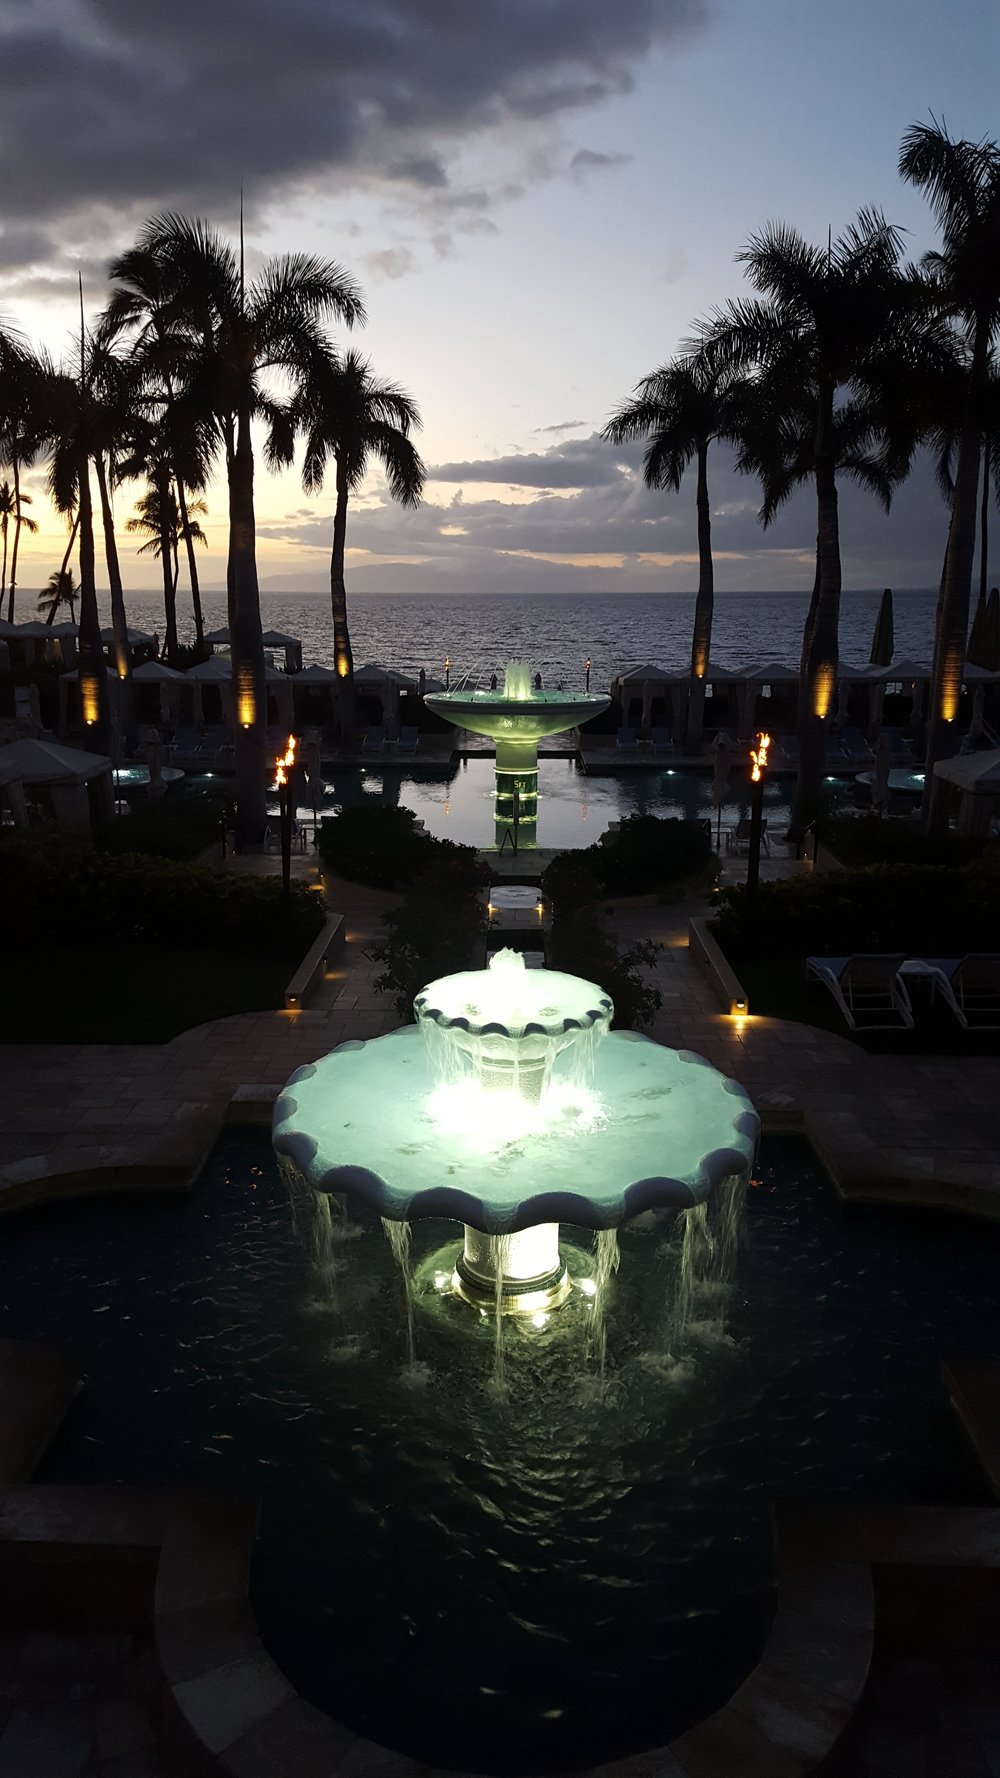 Four Seasons Wailea by night